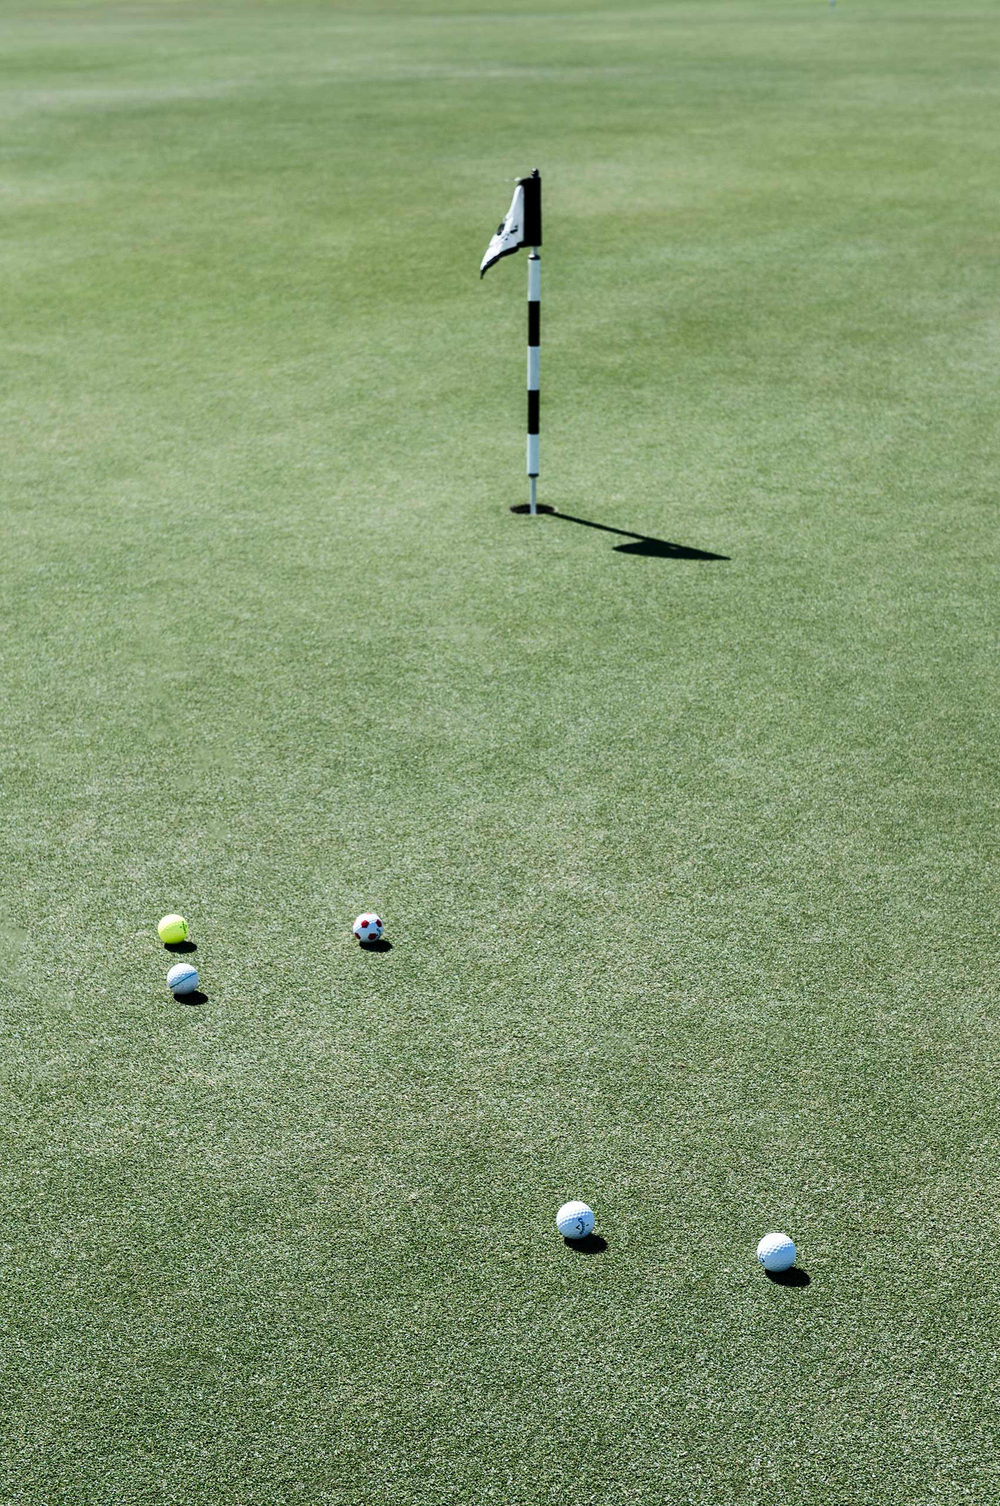 Putting-Green-HenrikOlundPhotography.jpg